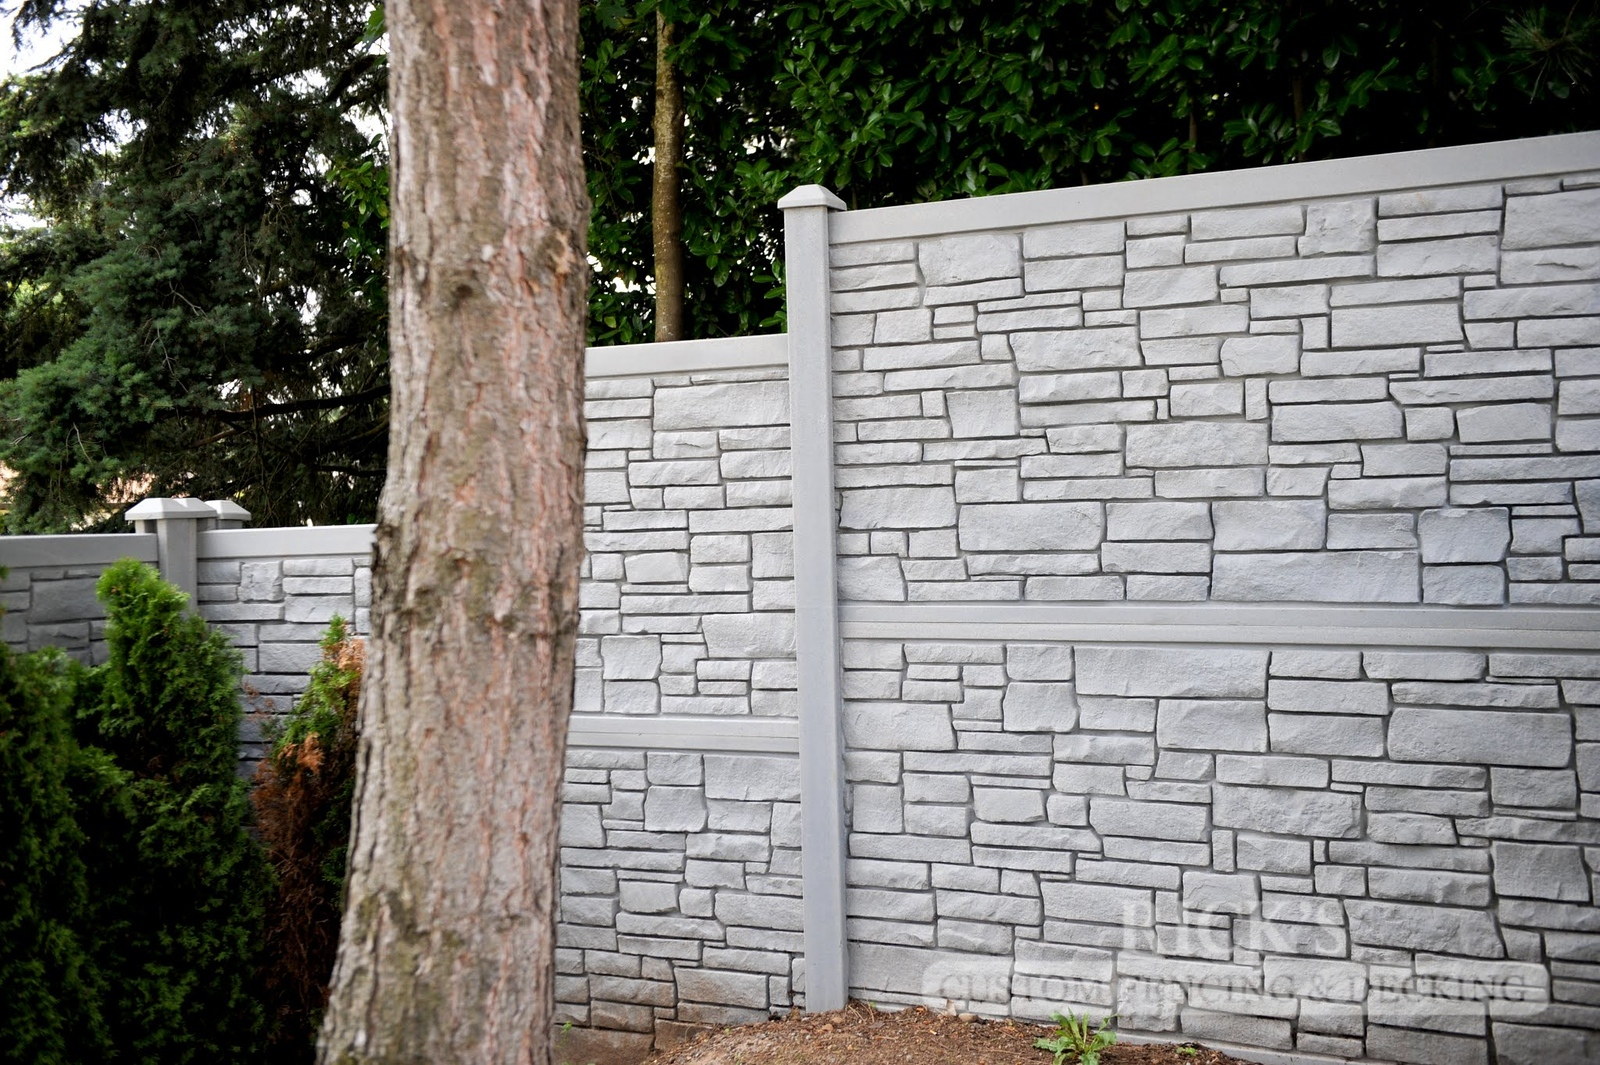 4024 - Allegheny Simulated Rock Fencing